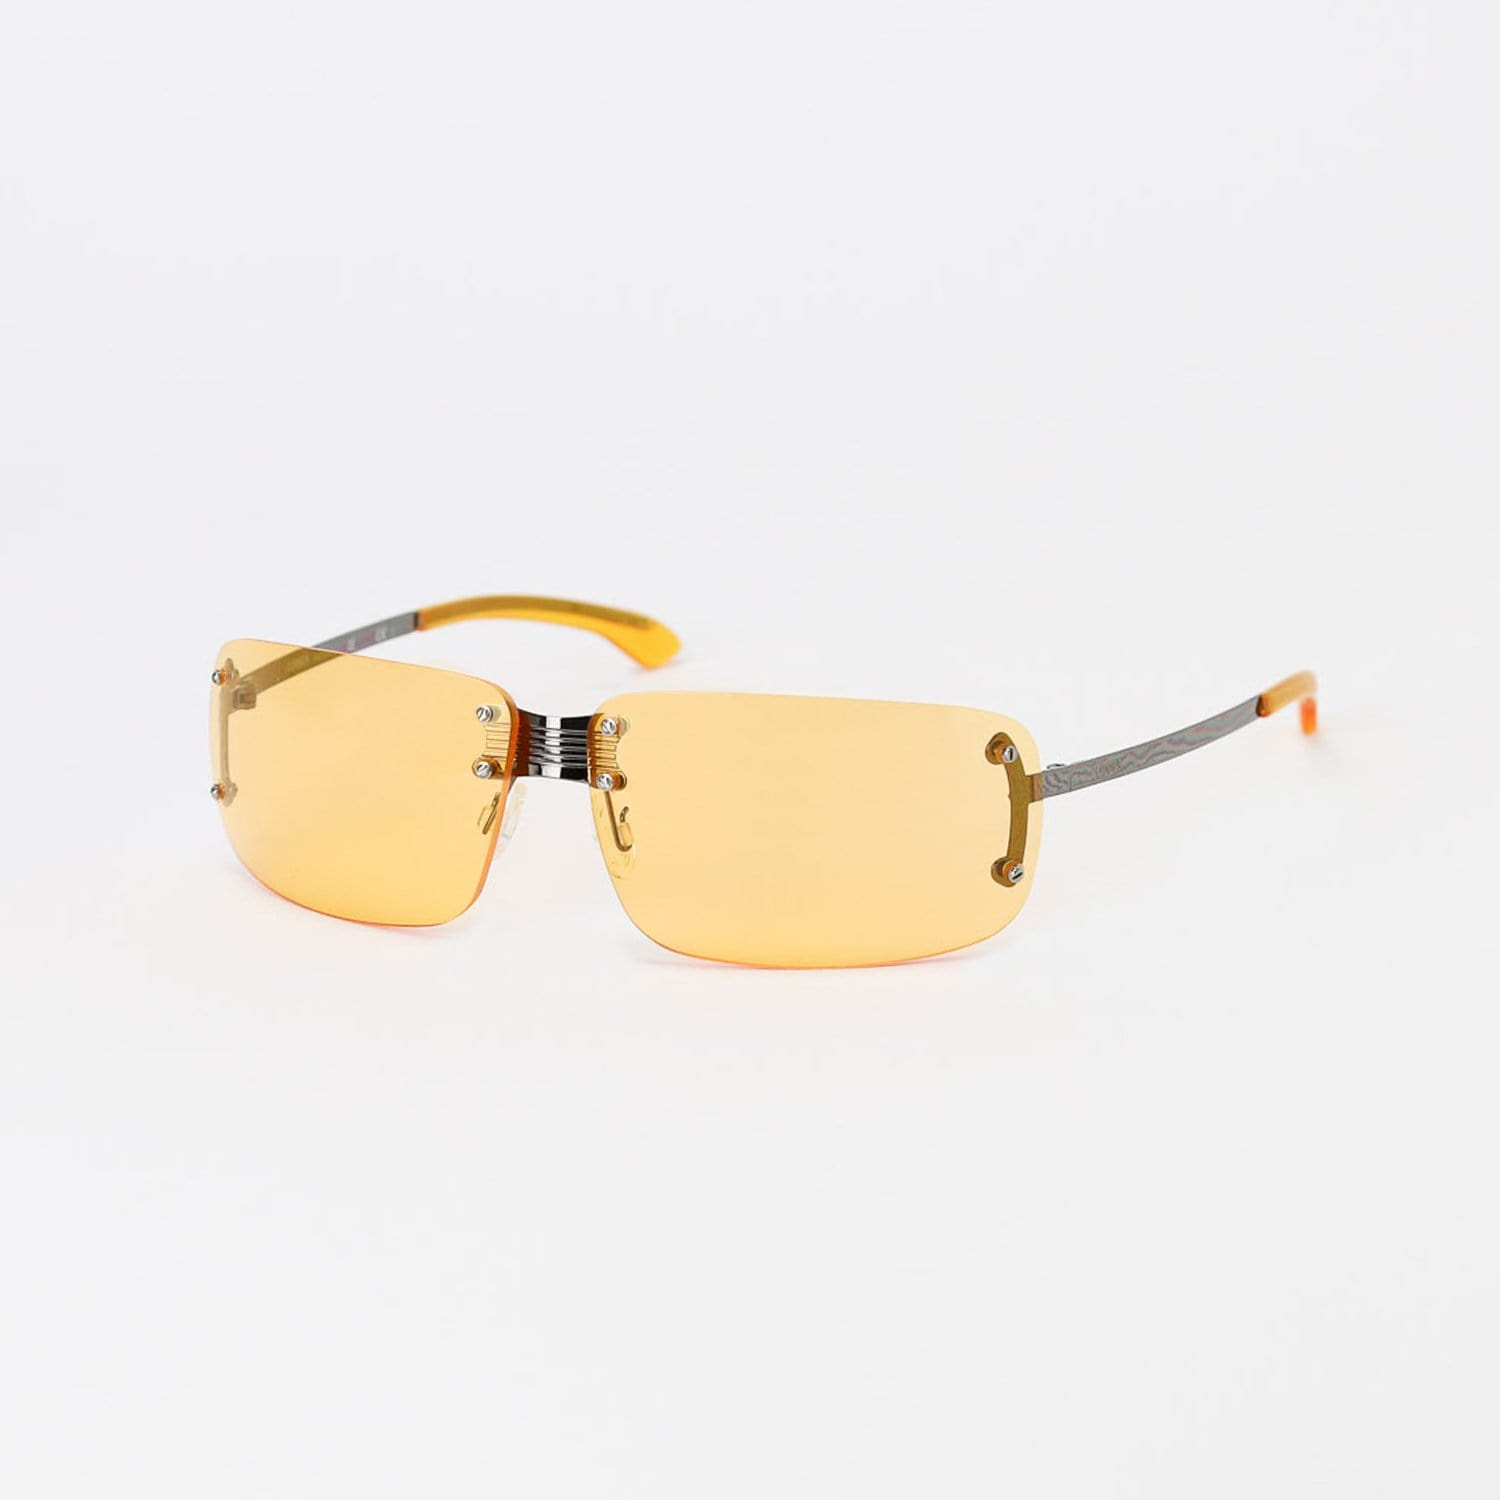 Versace Sunglasses Orange Sunglasses Versace